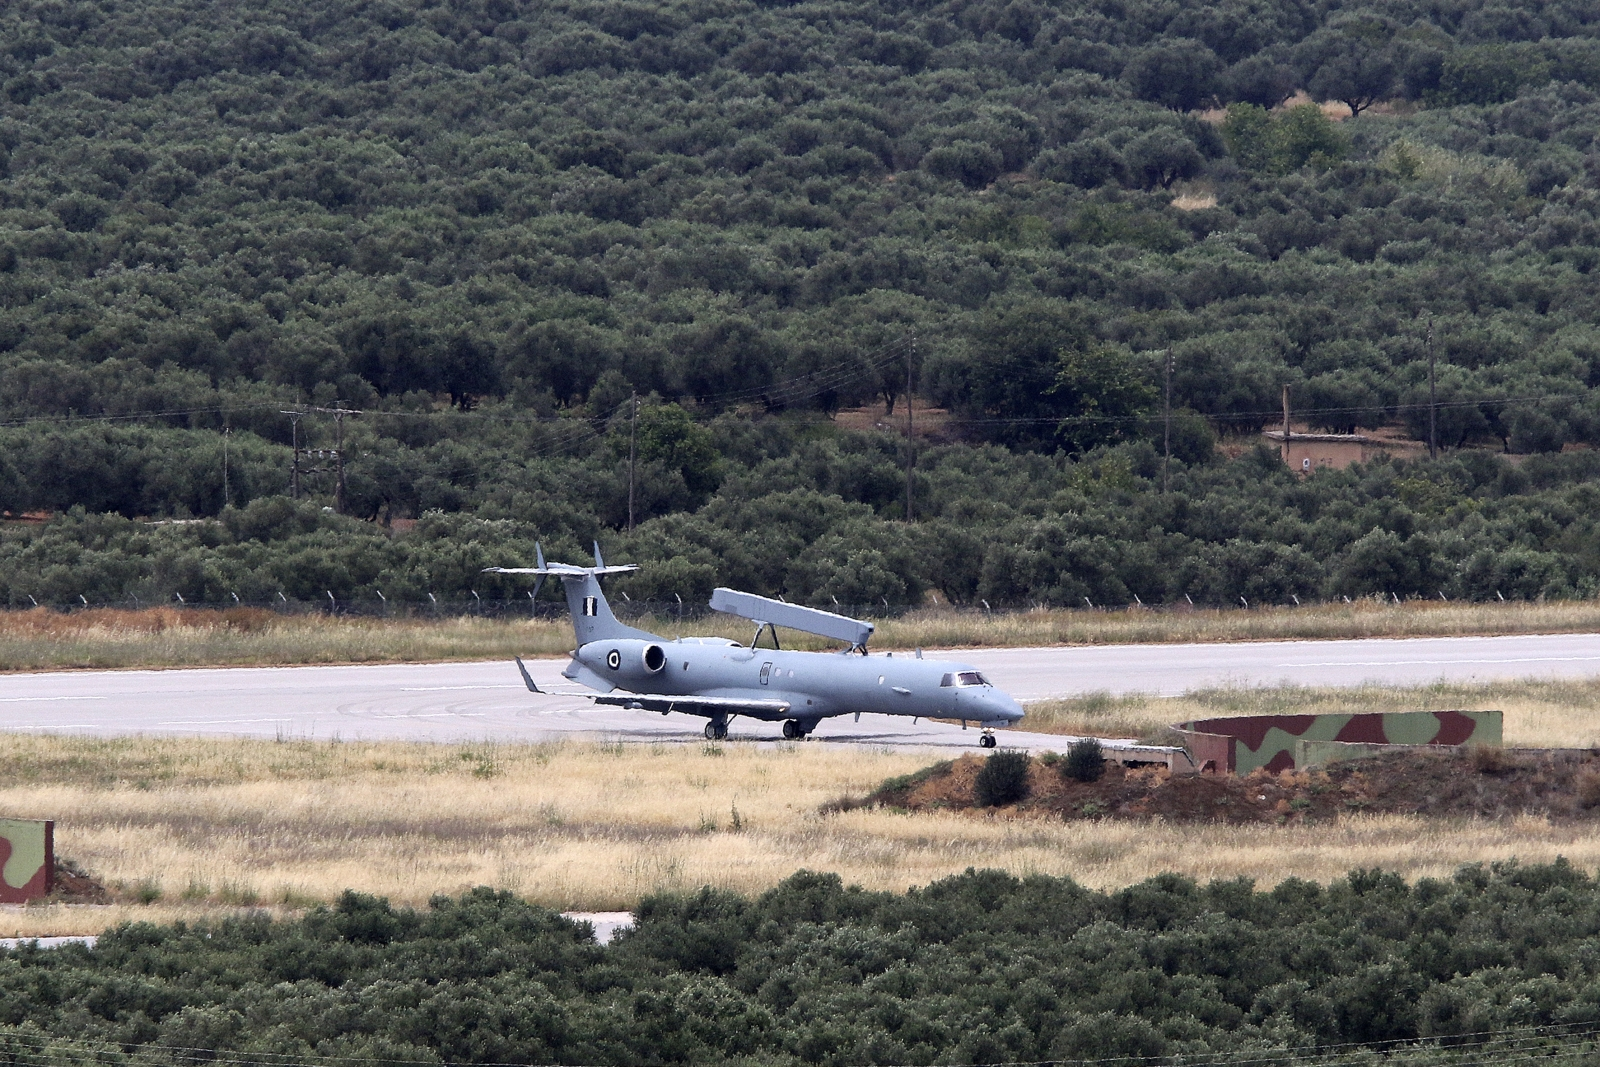 A Hellenic Air Force Erieye EMB-145H AEW&C aircraft